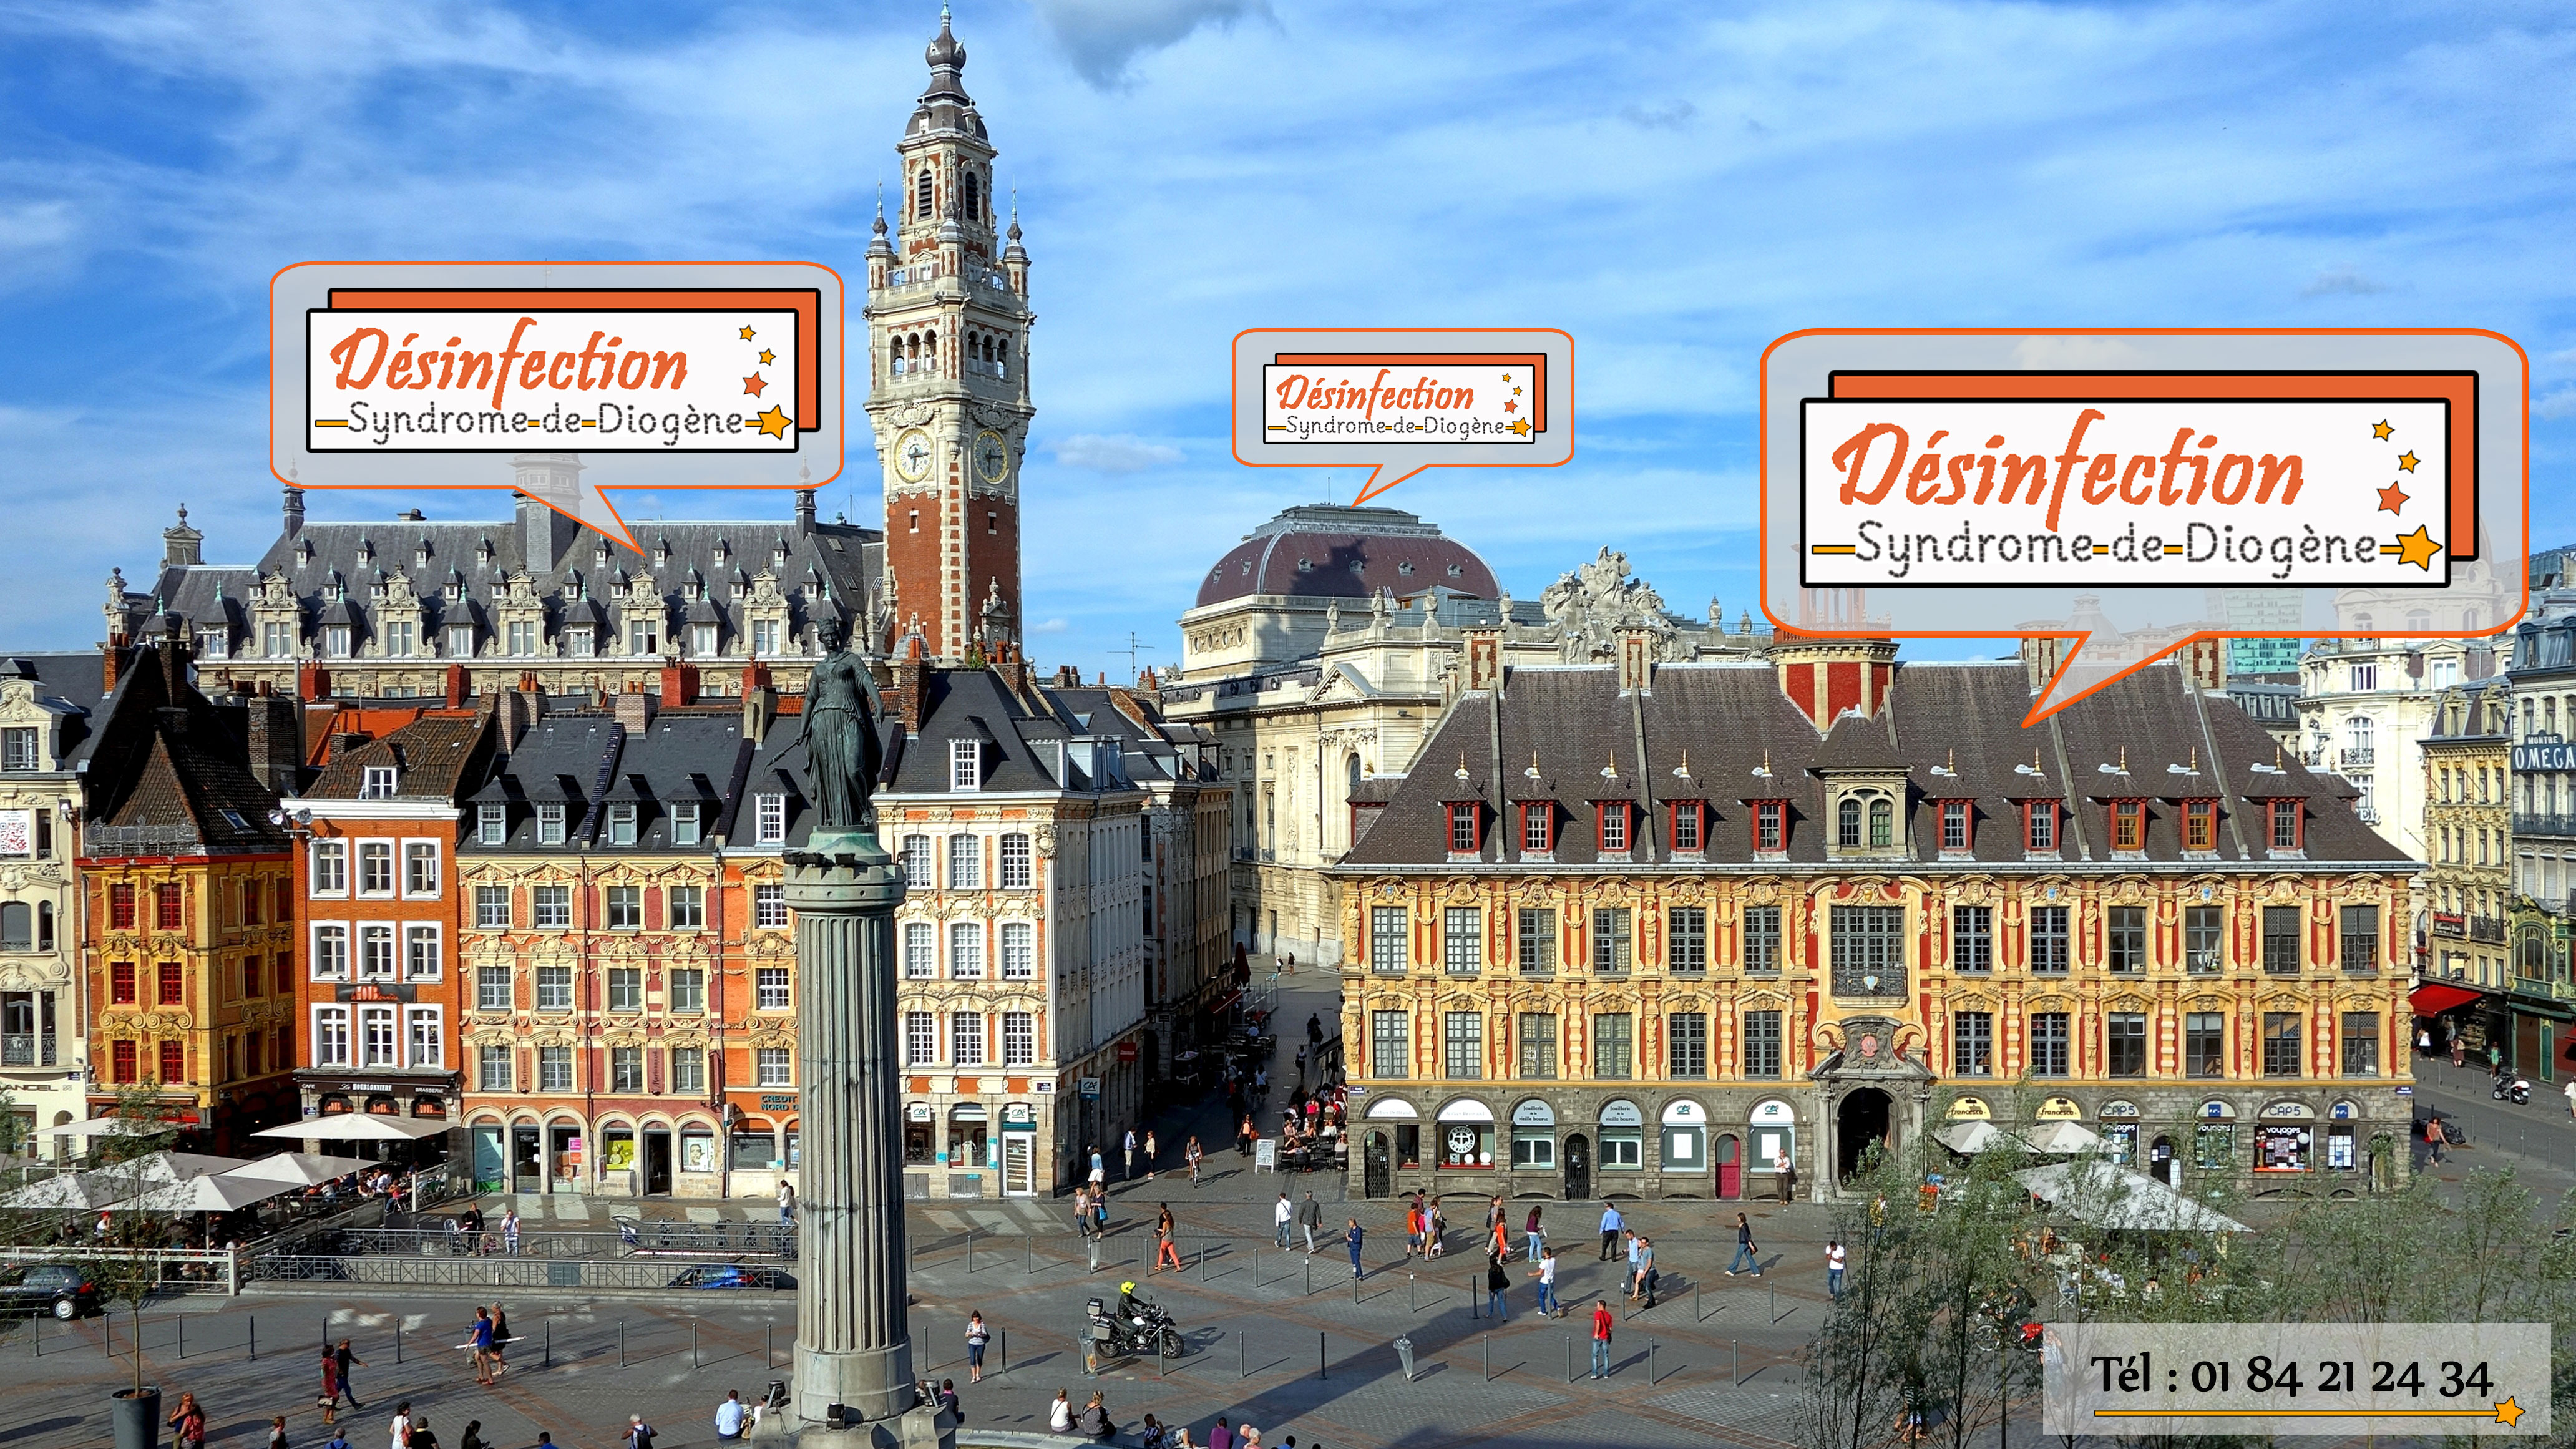 Lille-nettoyage-syndrome-diogene-entreprise